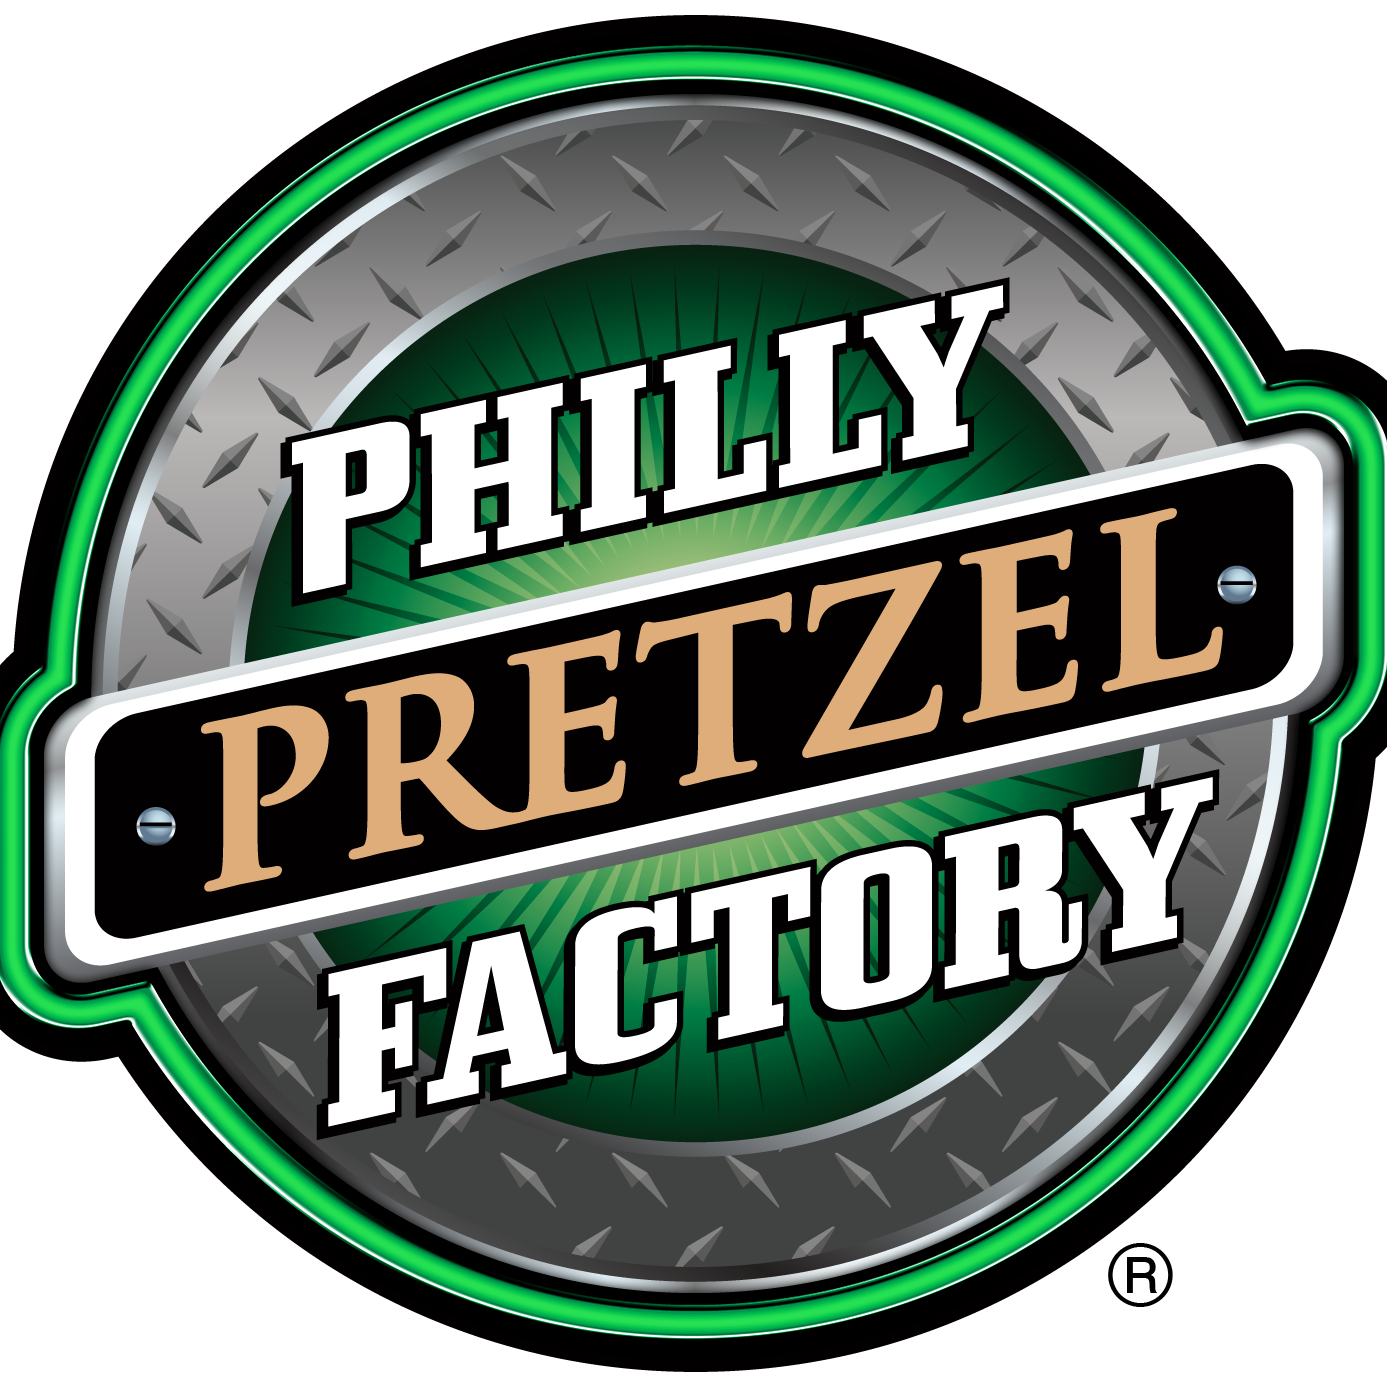 Philly Pretzel Factory - Langhorne, PA - Candy & Snacks